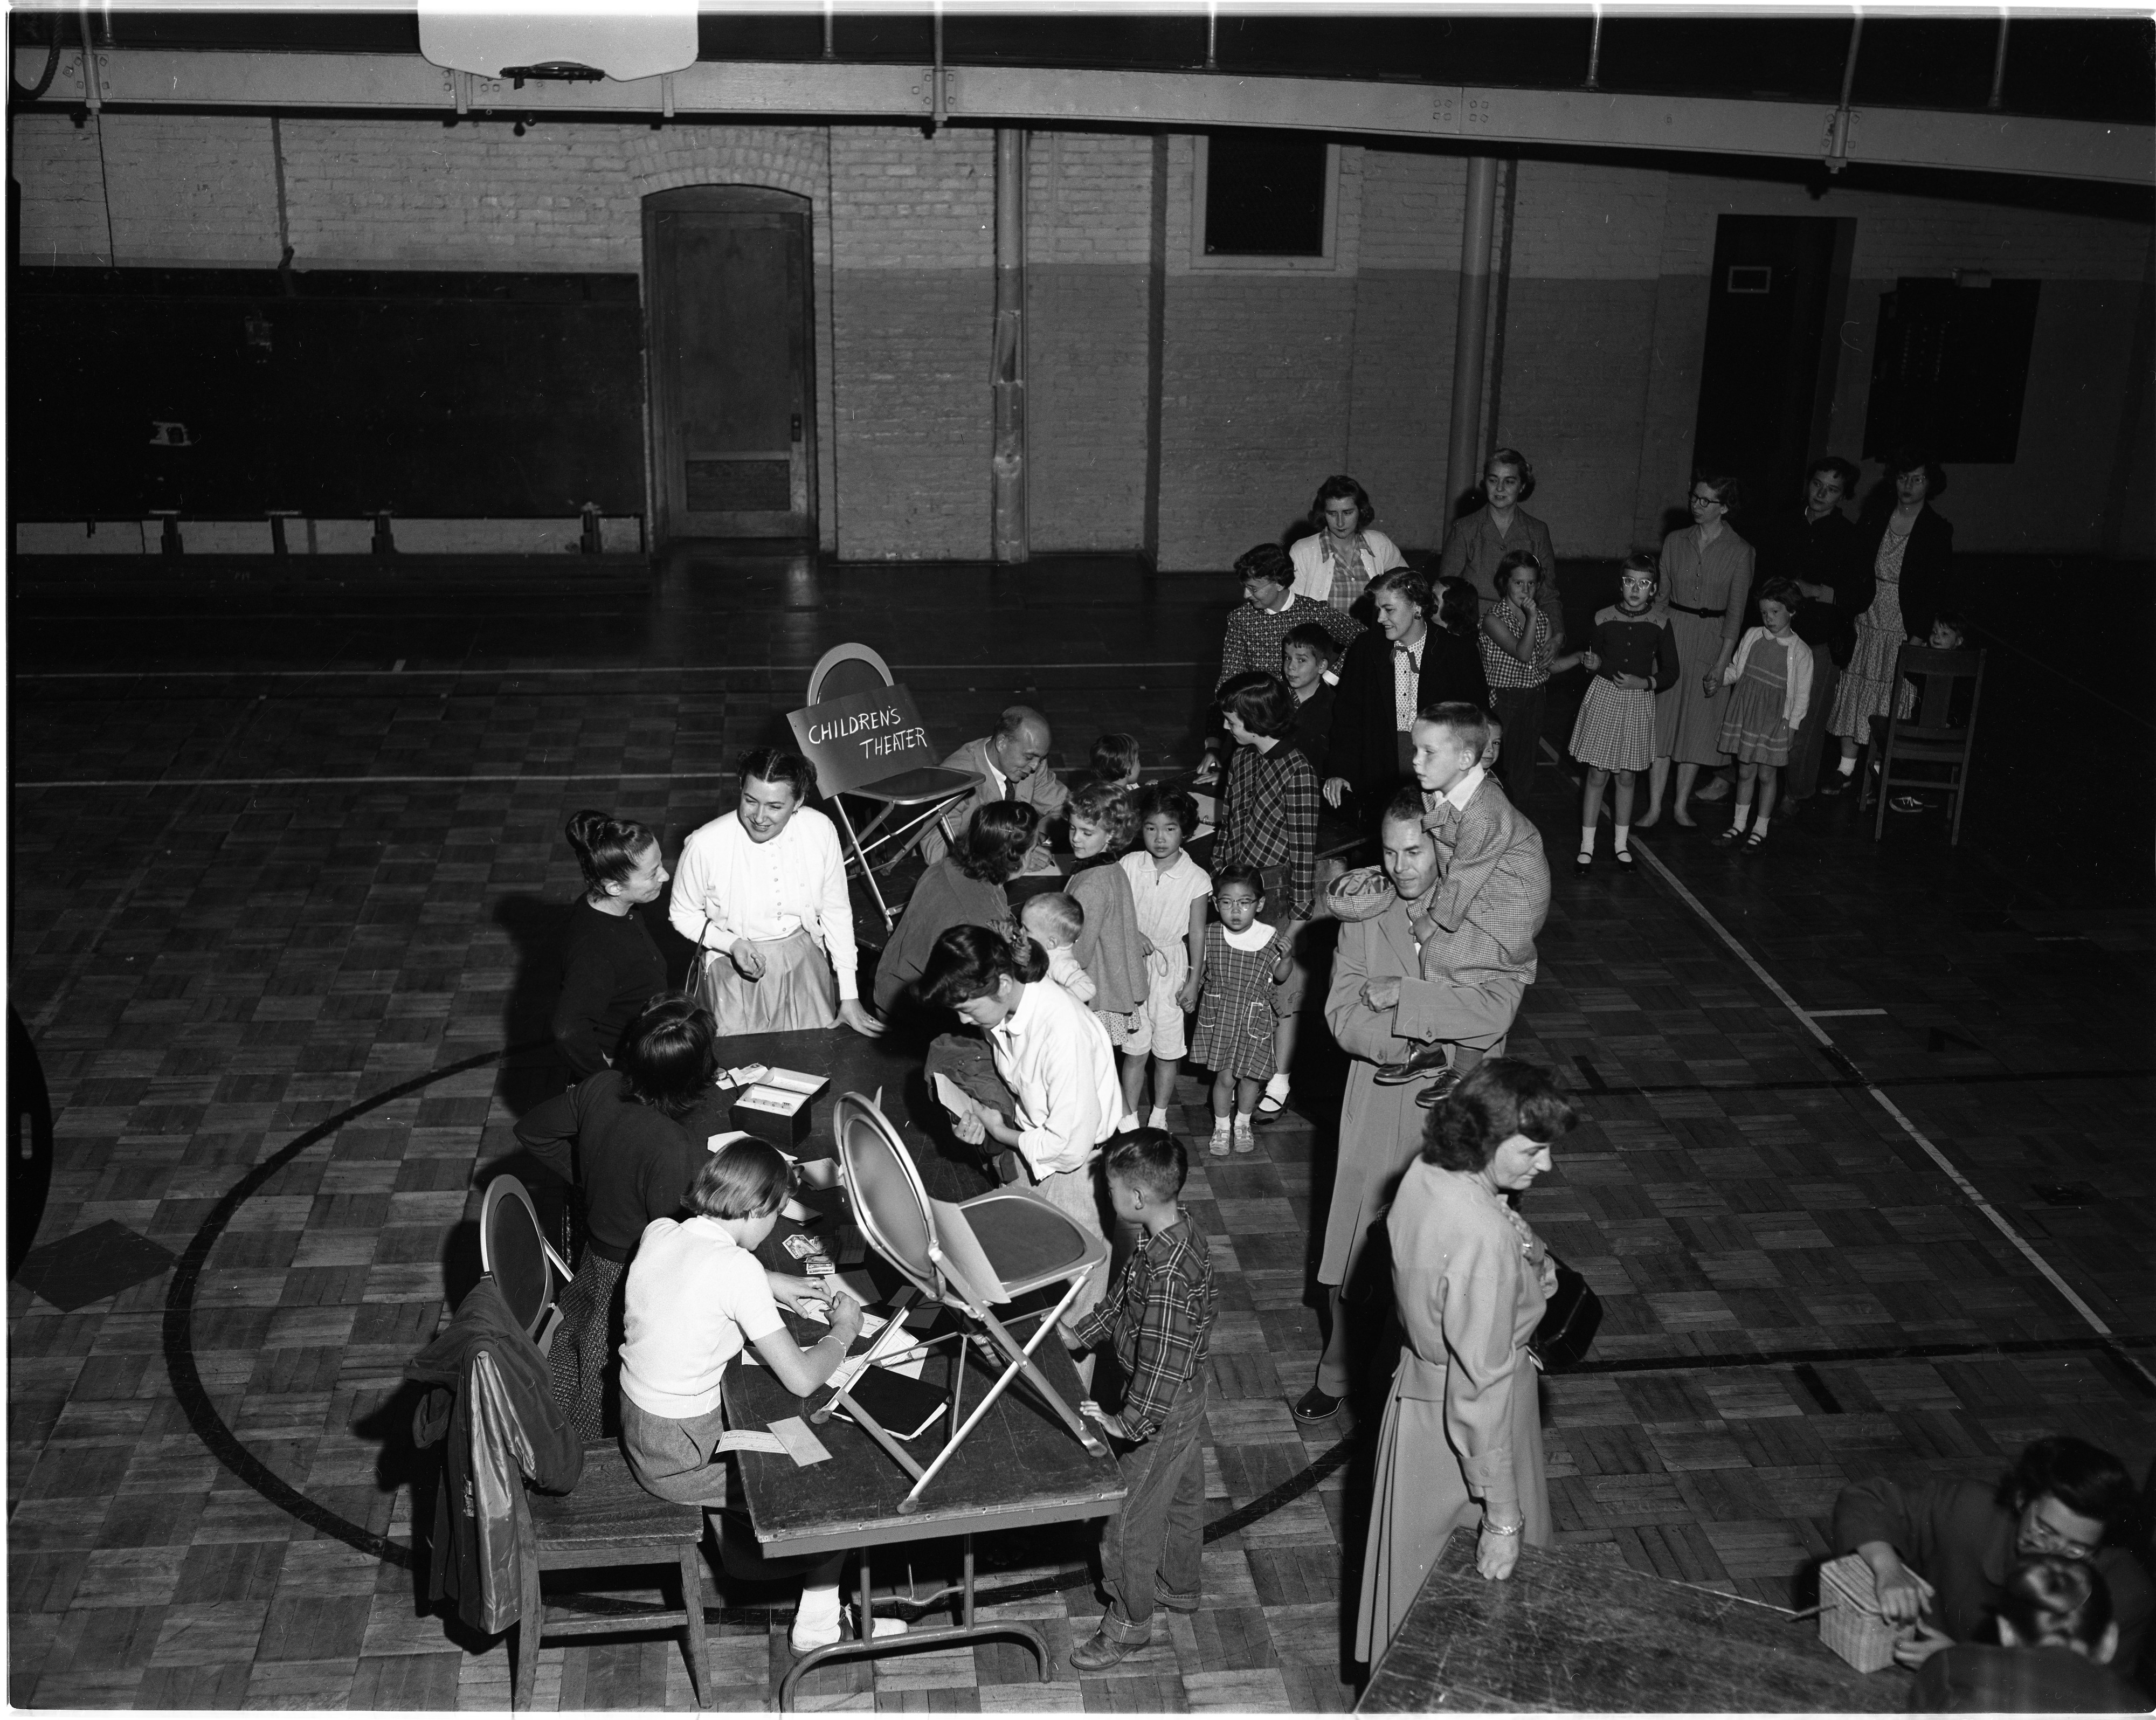 Registration For Childrens Art Class At Ann Arbor High School, September 1954 image